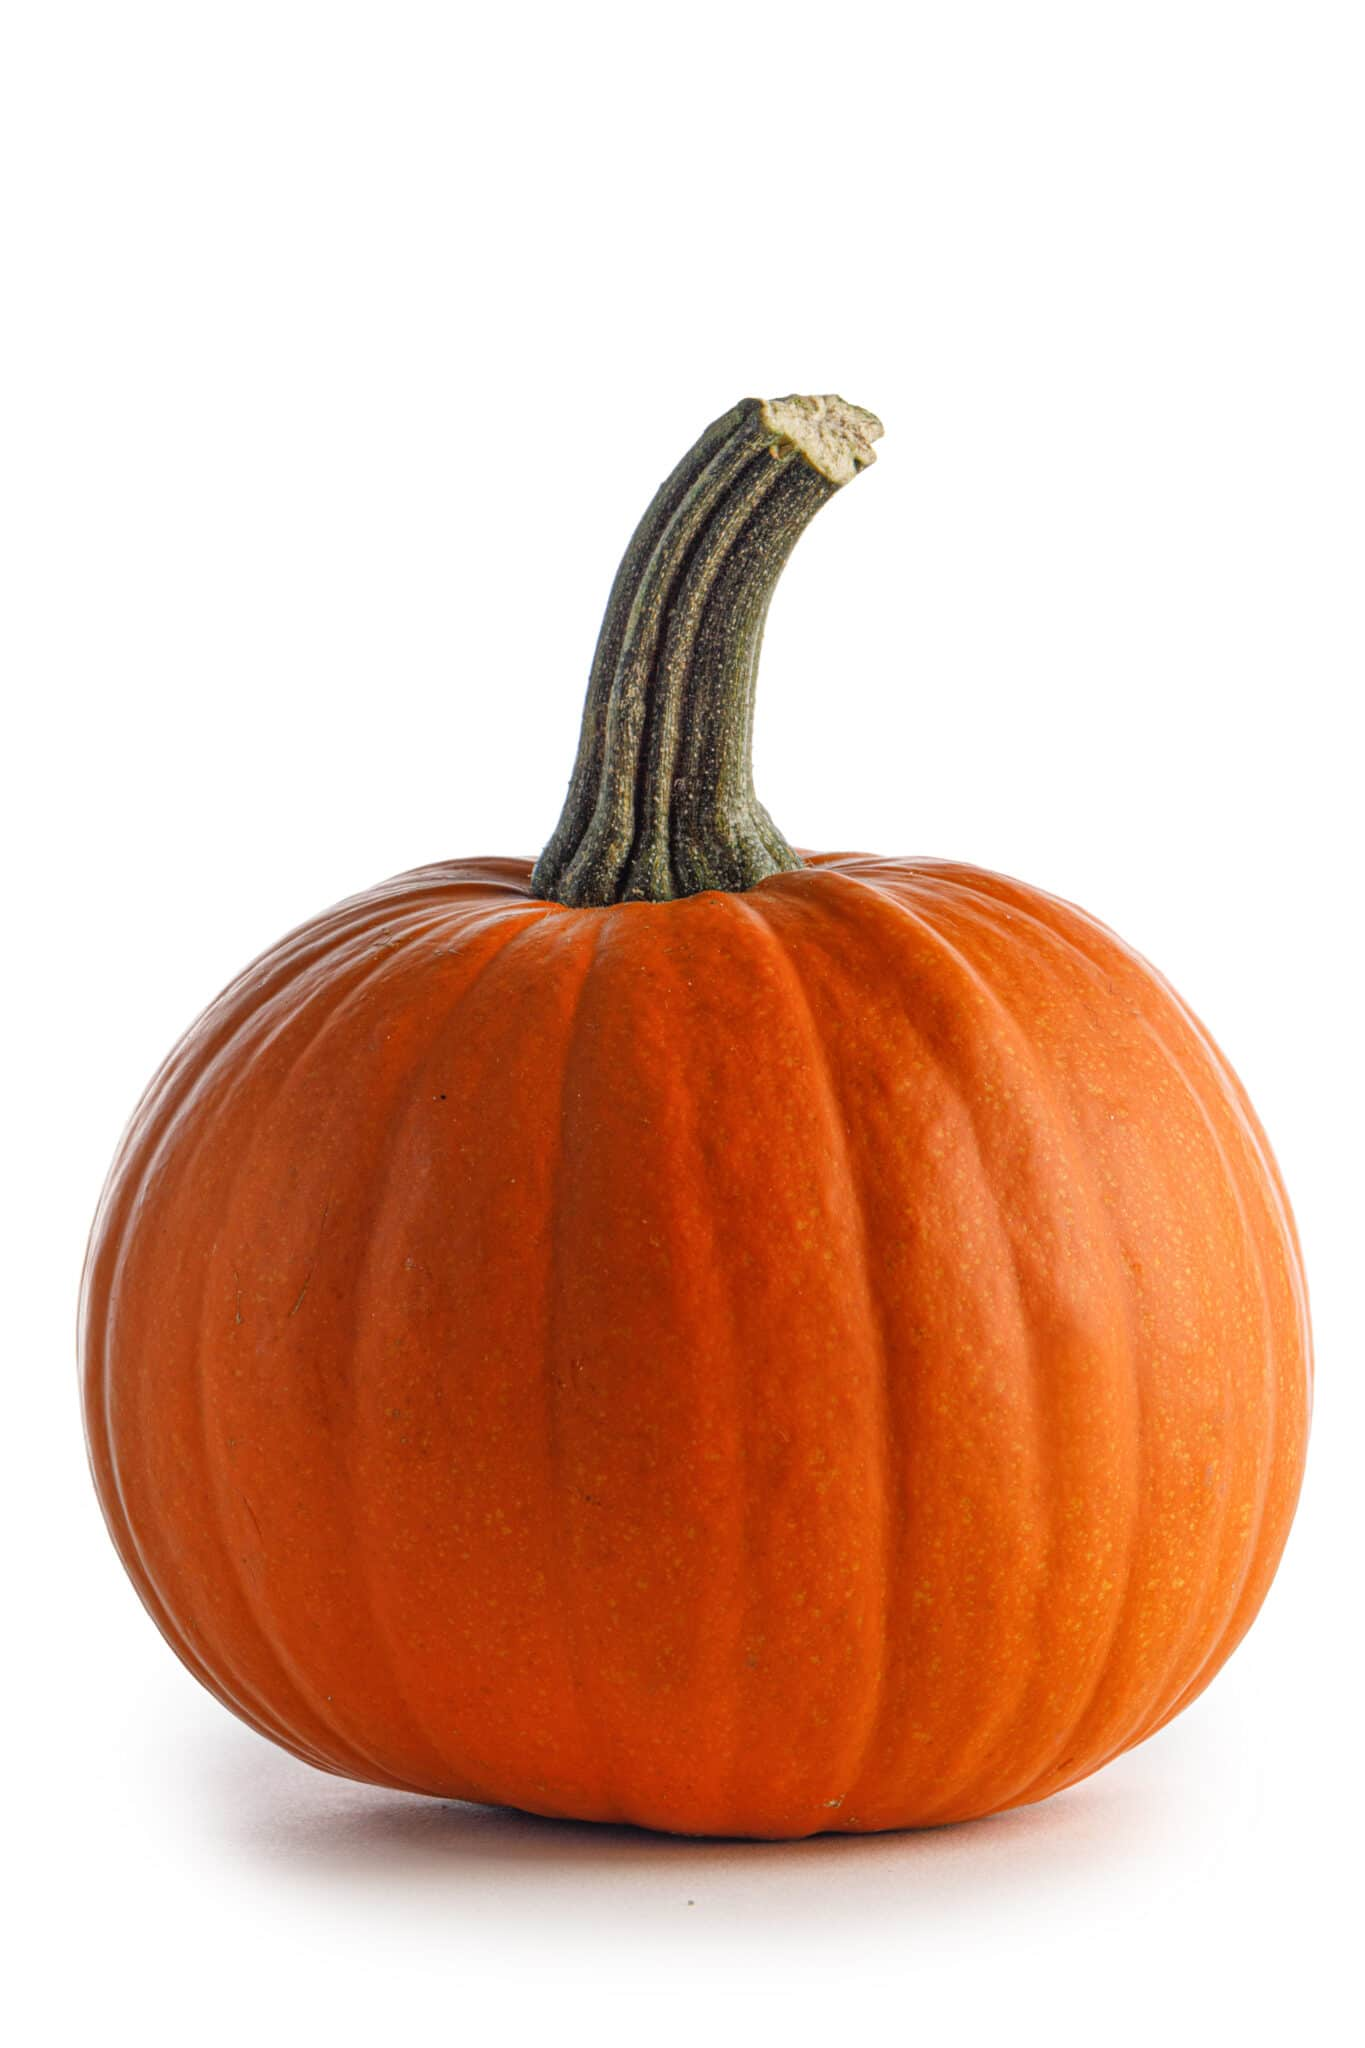 Small pie type pumpkin isolated against a white background.